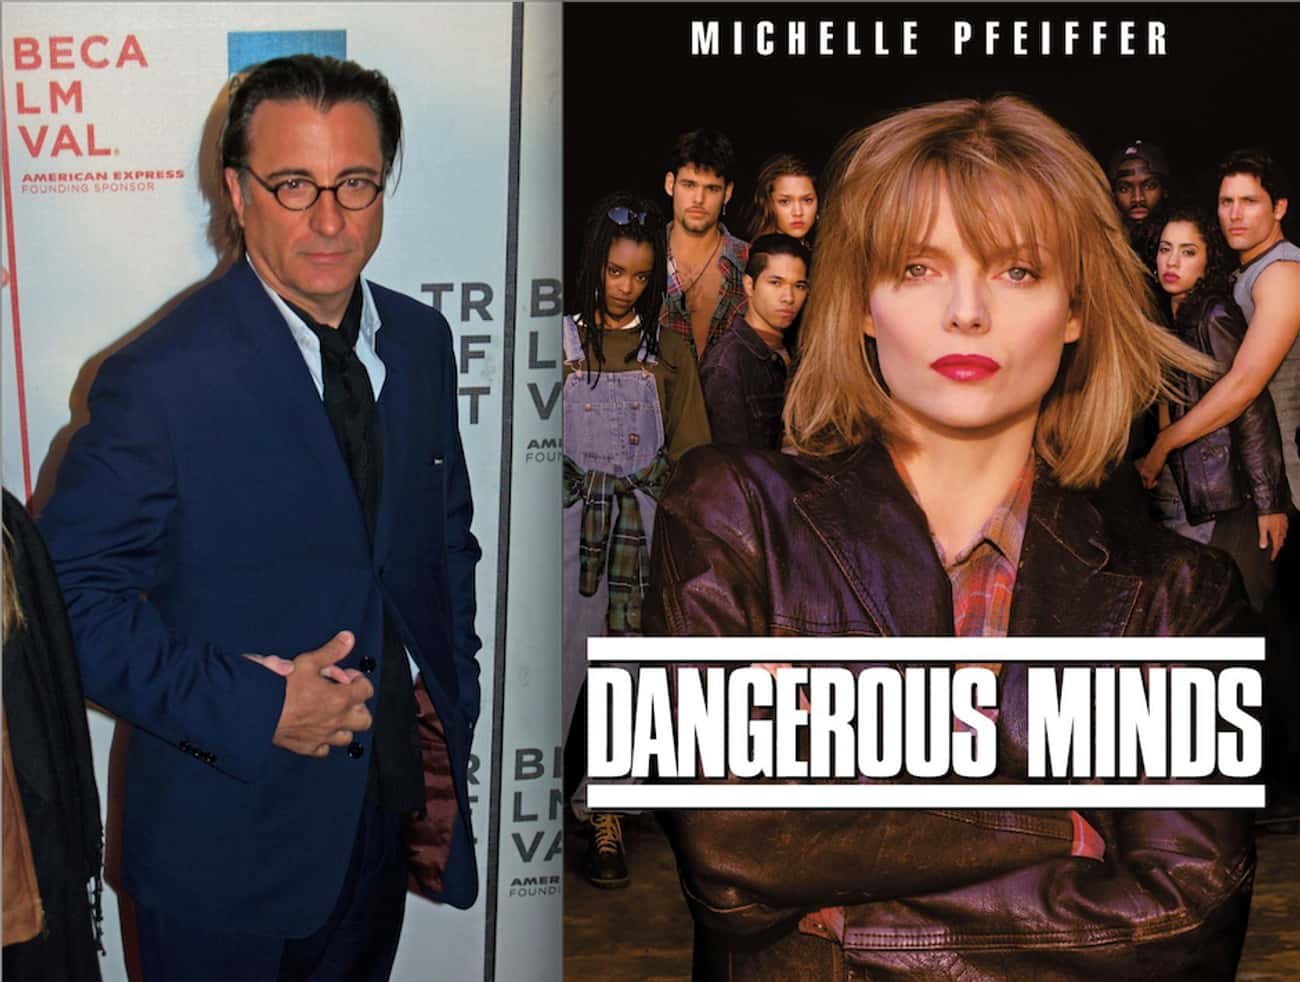 Andy García - Dangerous Minds is listed (or ranked) 4 on the list 22 Famous Actors Who Were Cut from Famous Movies